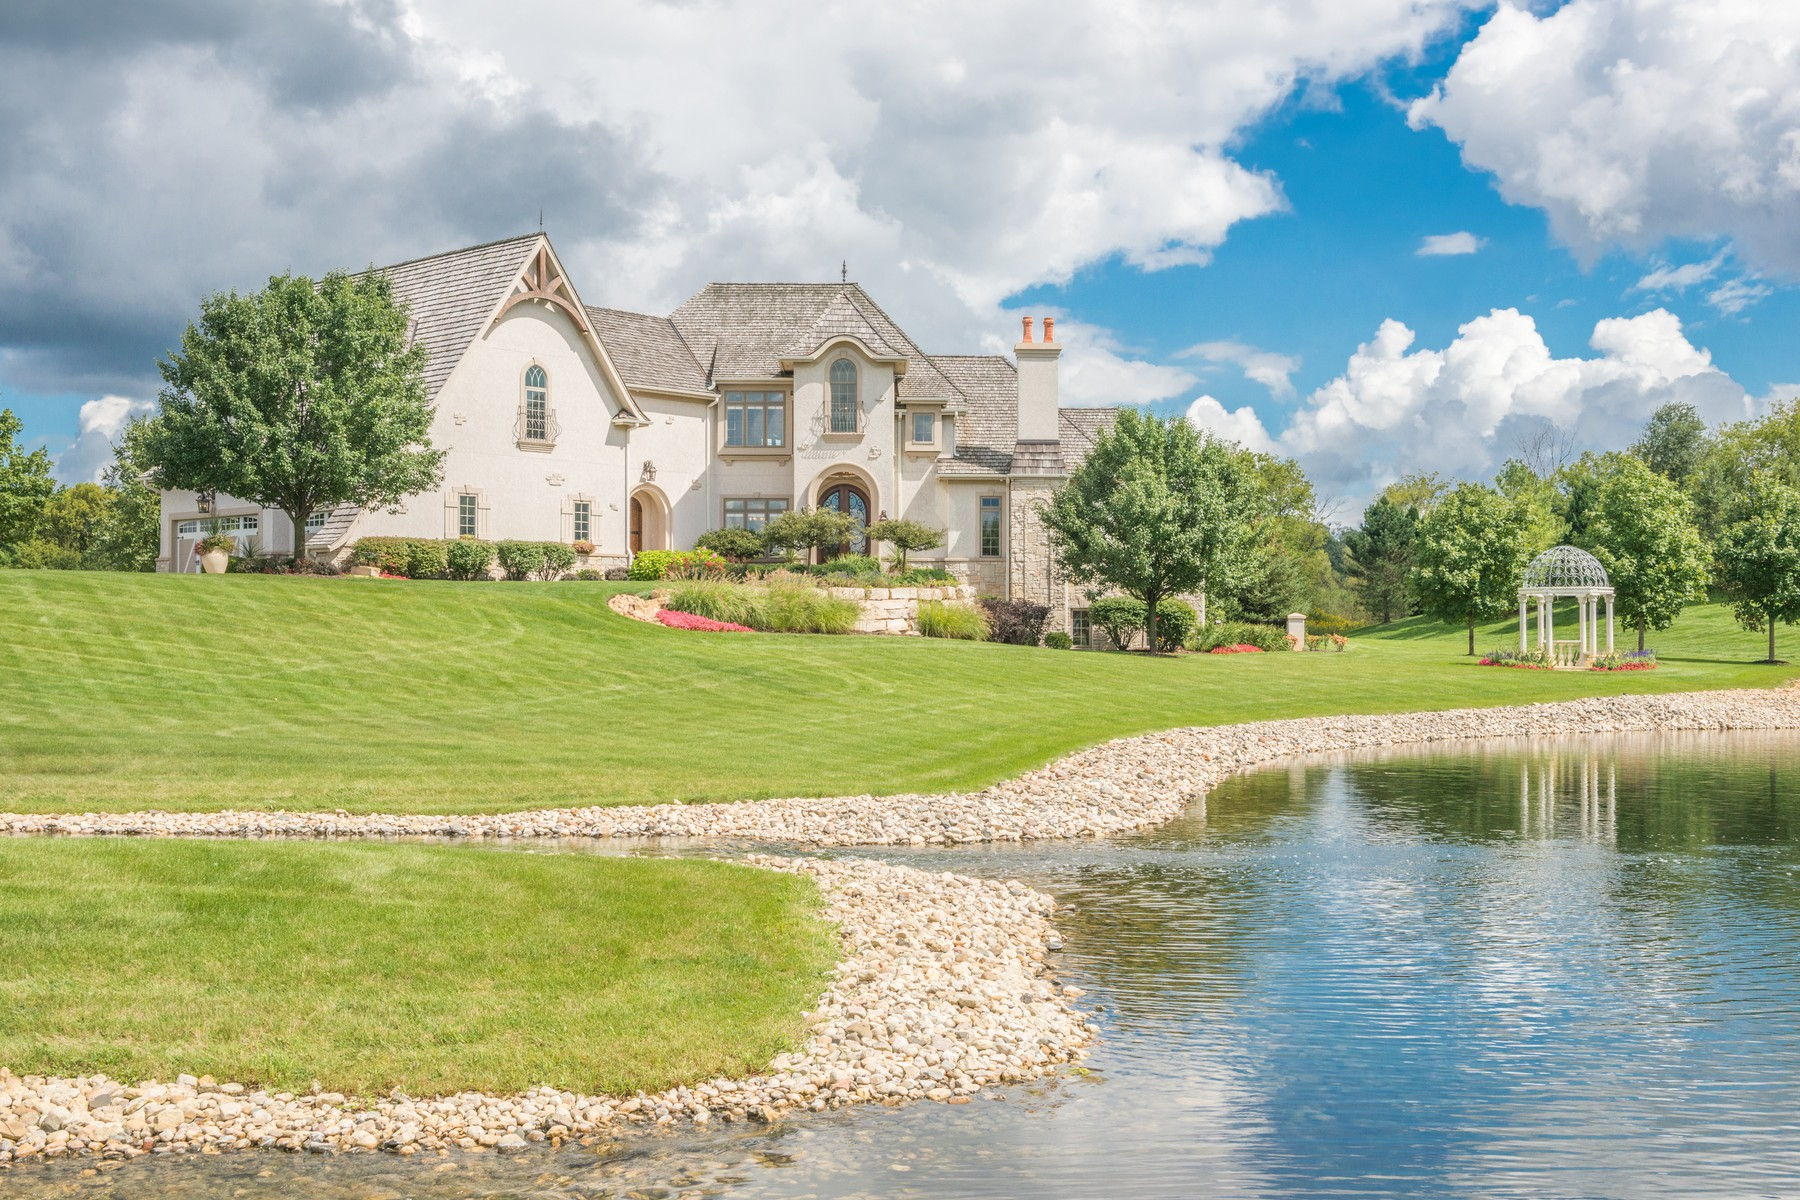 Single Family Home for Sale at Tuscan Inspired Dream Home 4410 Farmington Lane Johnsburg, Illinois 60051 United States